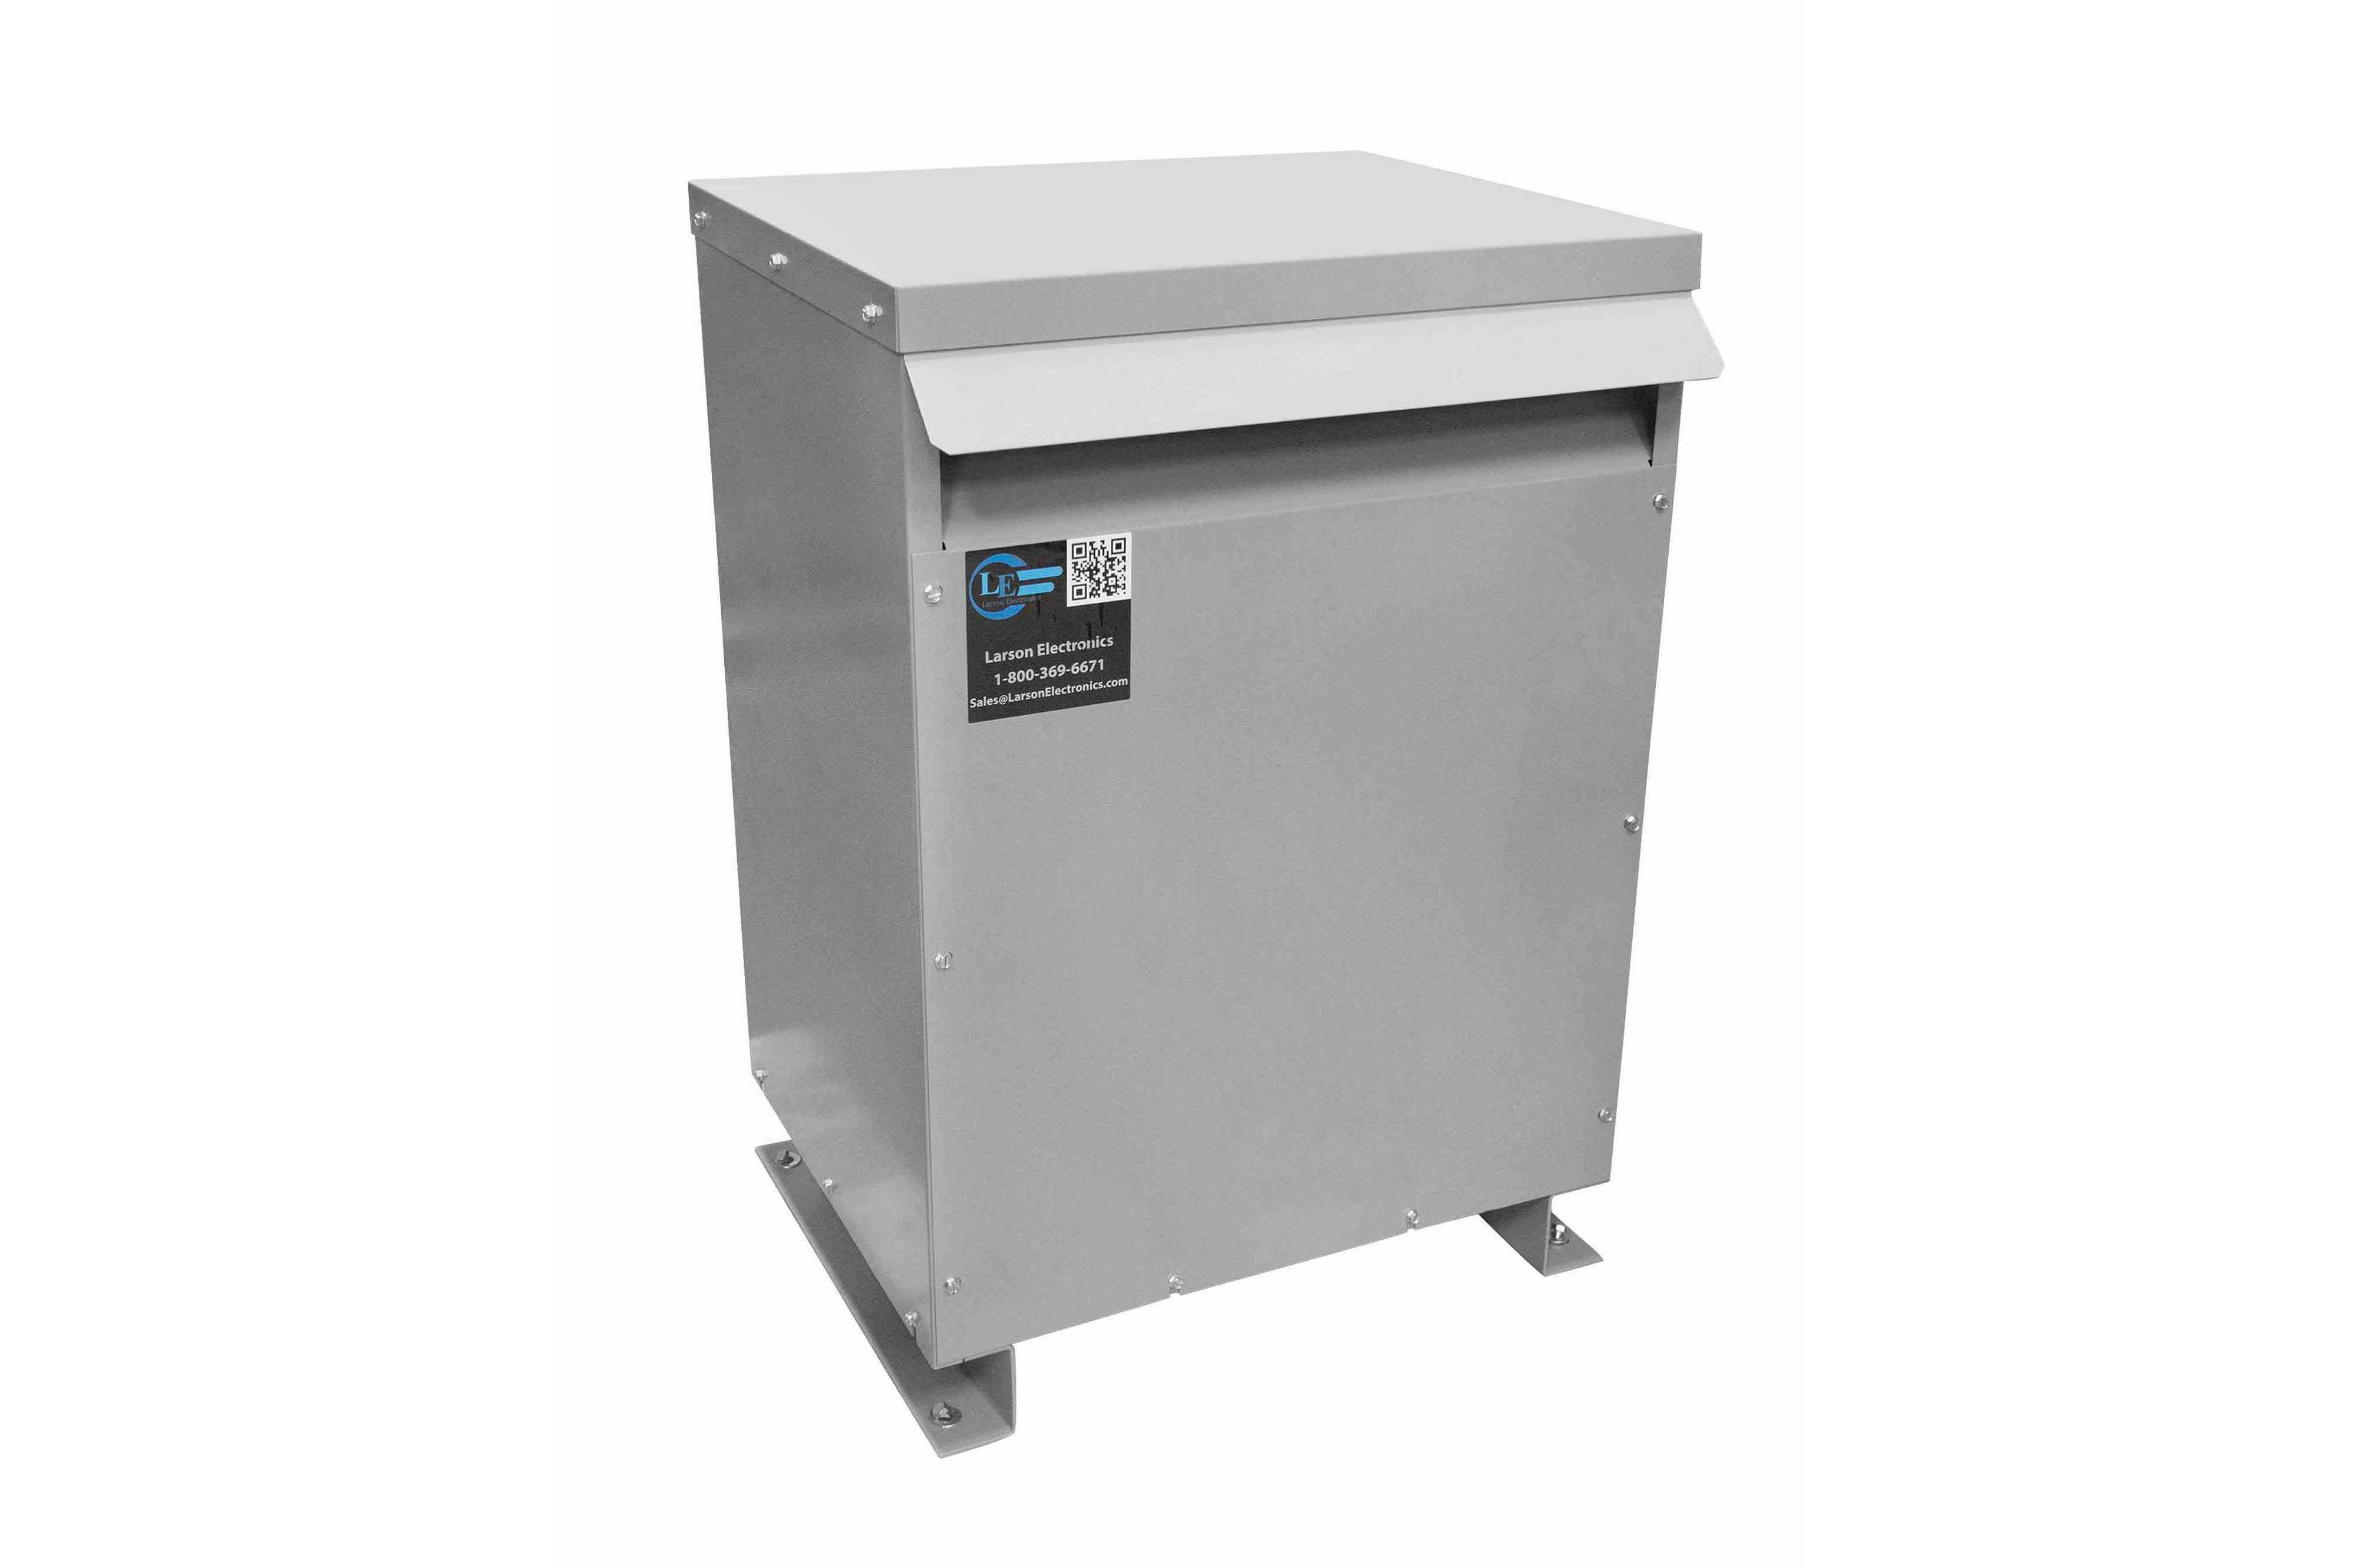 55 kVA 3PH Isolation Transformer, 480V Wye Primary, 415V Delta Secondary, N3R, Ventilated, 60 Hz